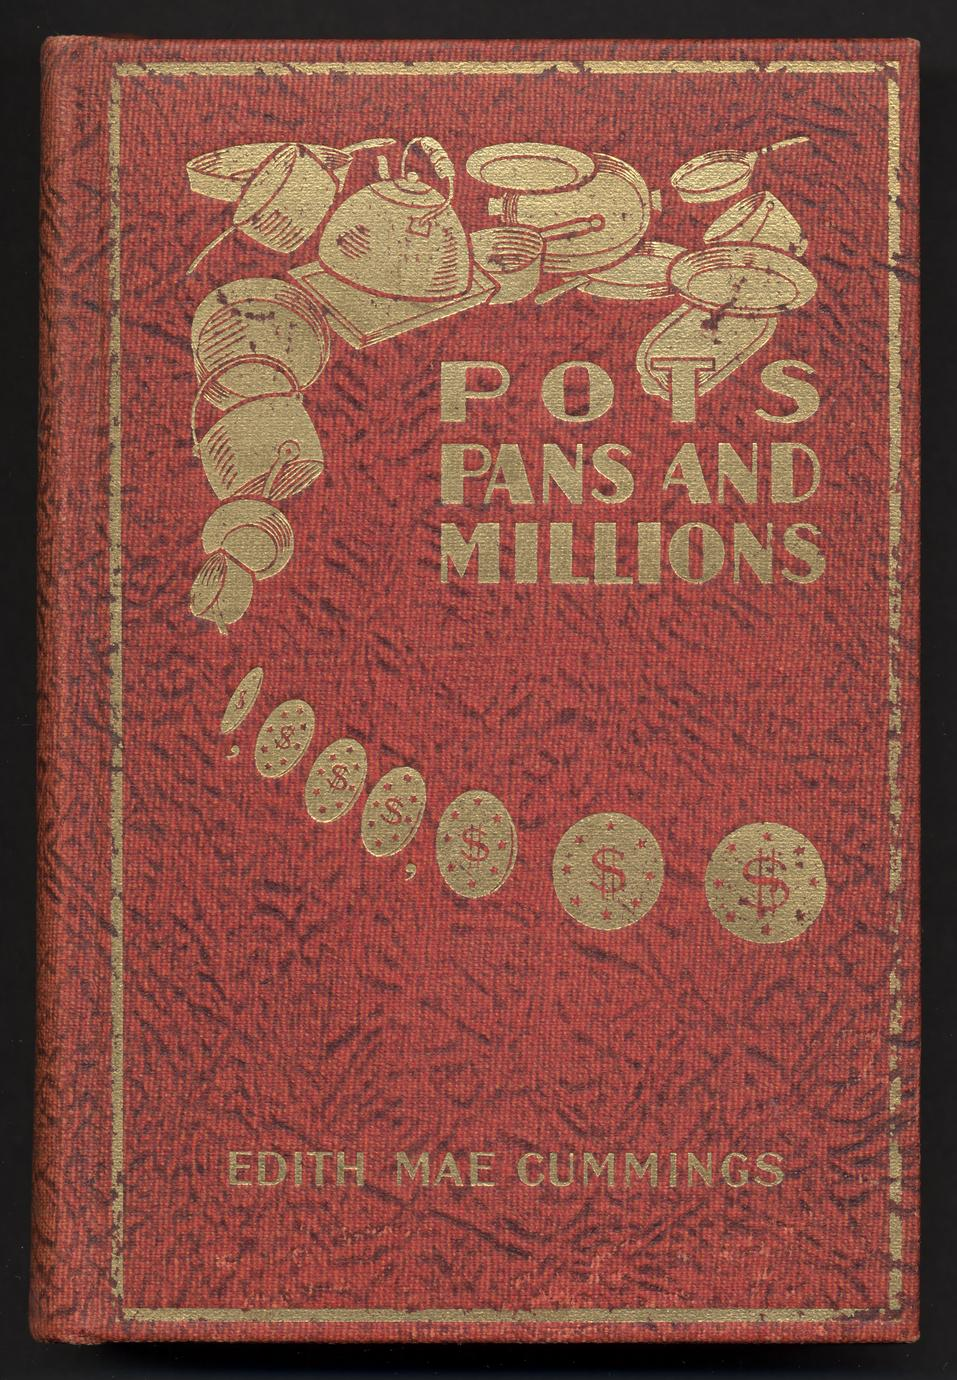 Pots, pans and millions : a study of woman's right to be in business; her proclivities and capacity for success (1 of 2)